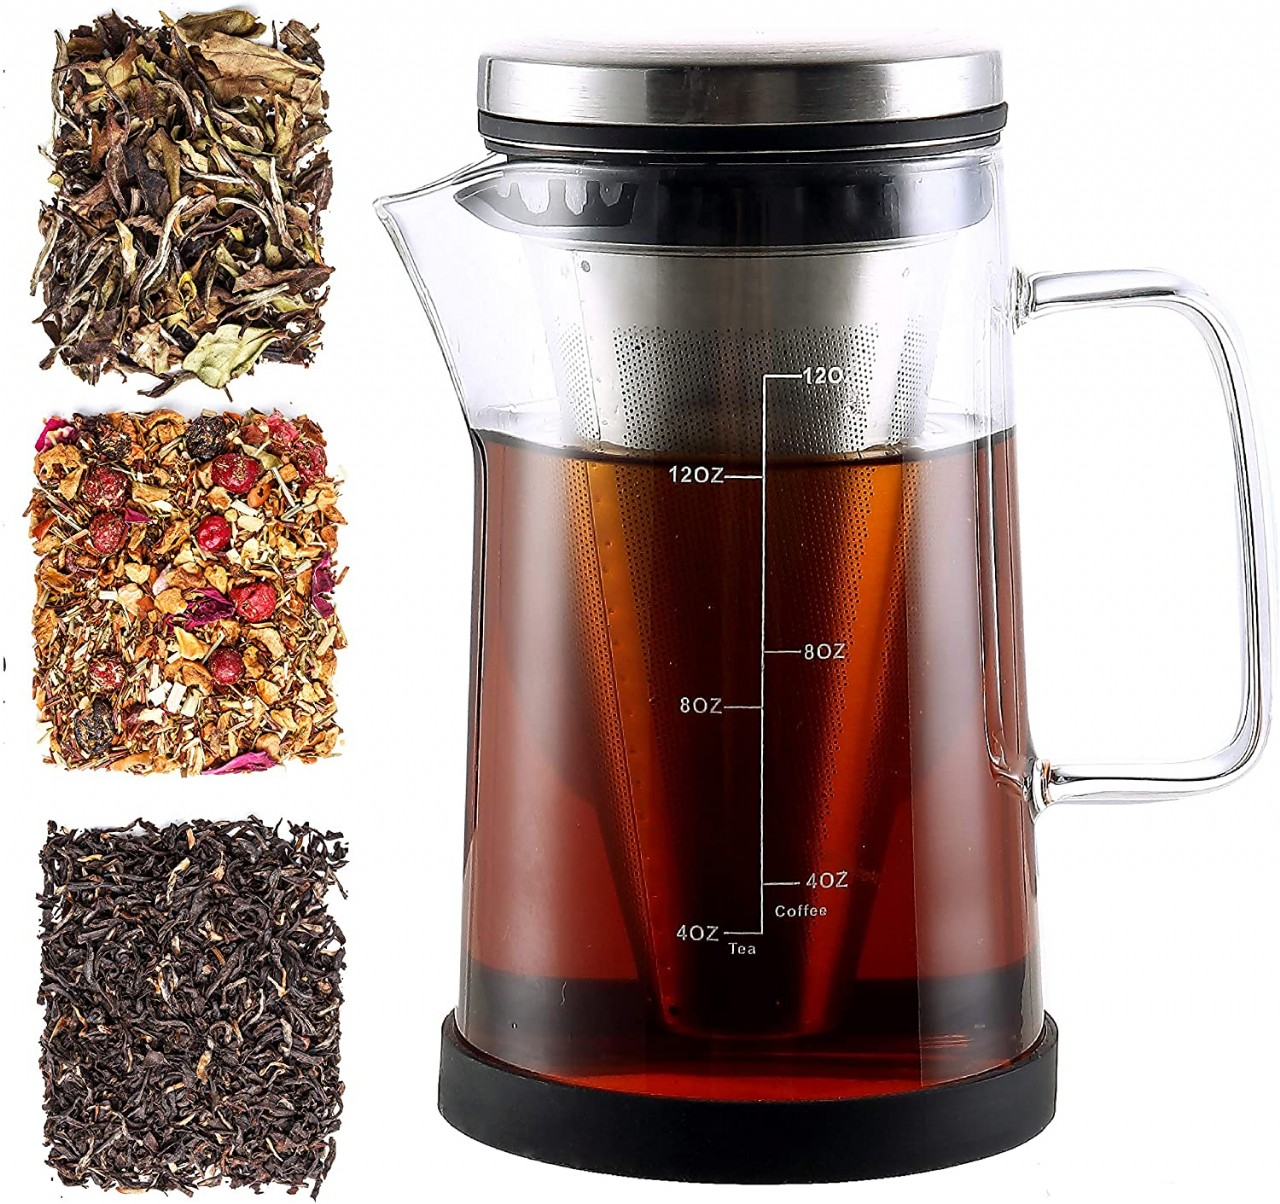 Hot Brew Coffee Maker/Tea Infuser Pitcher - Glass Coffee Tea Brewer Makes the Perfect Cup of Coffee